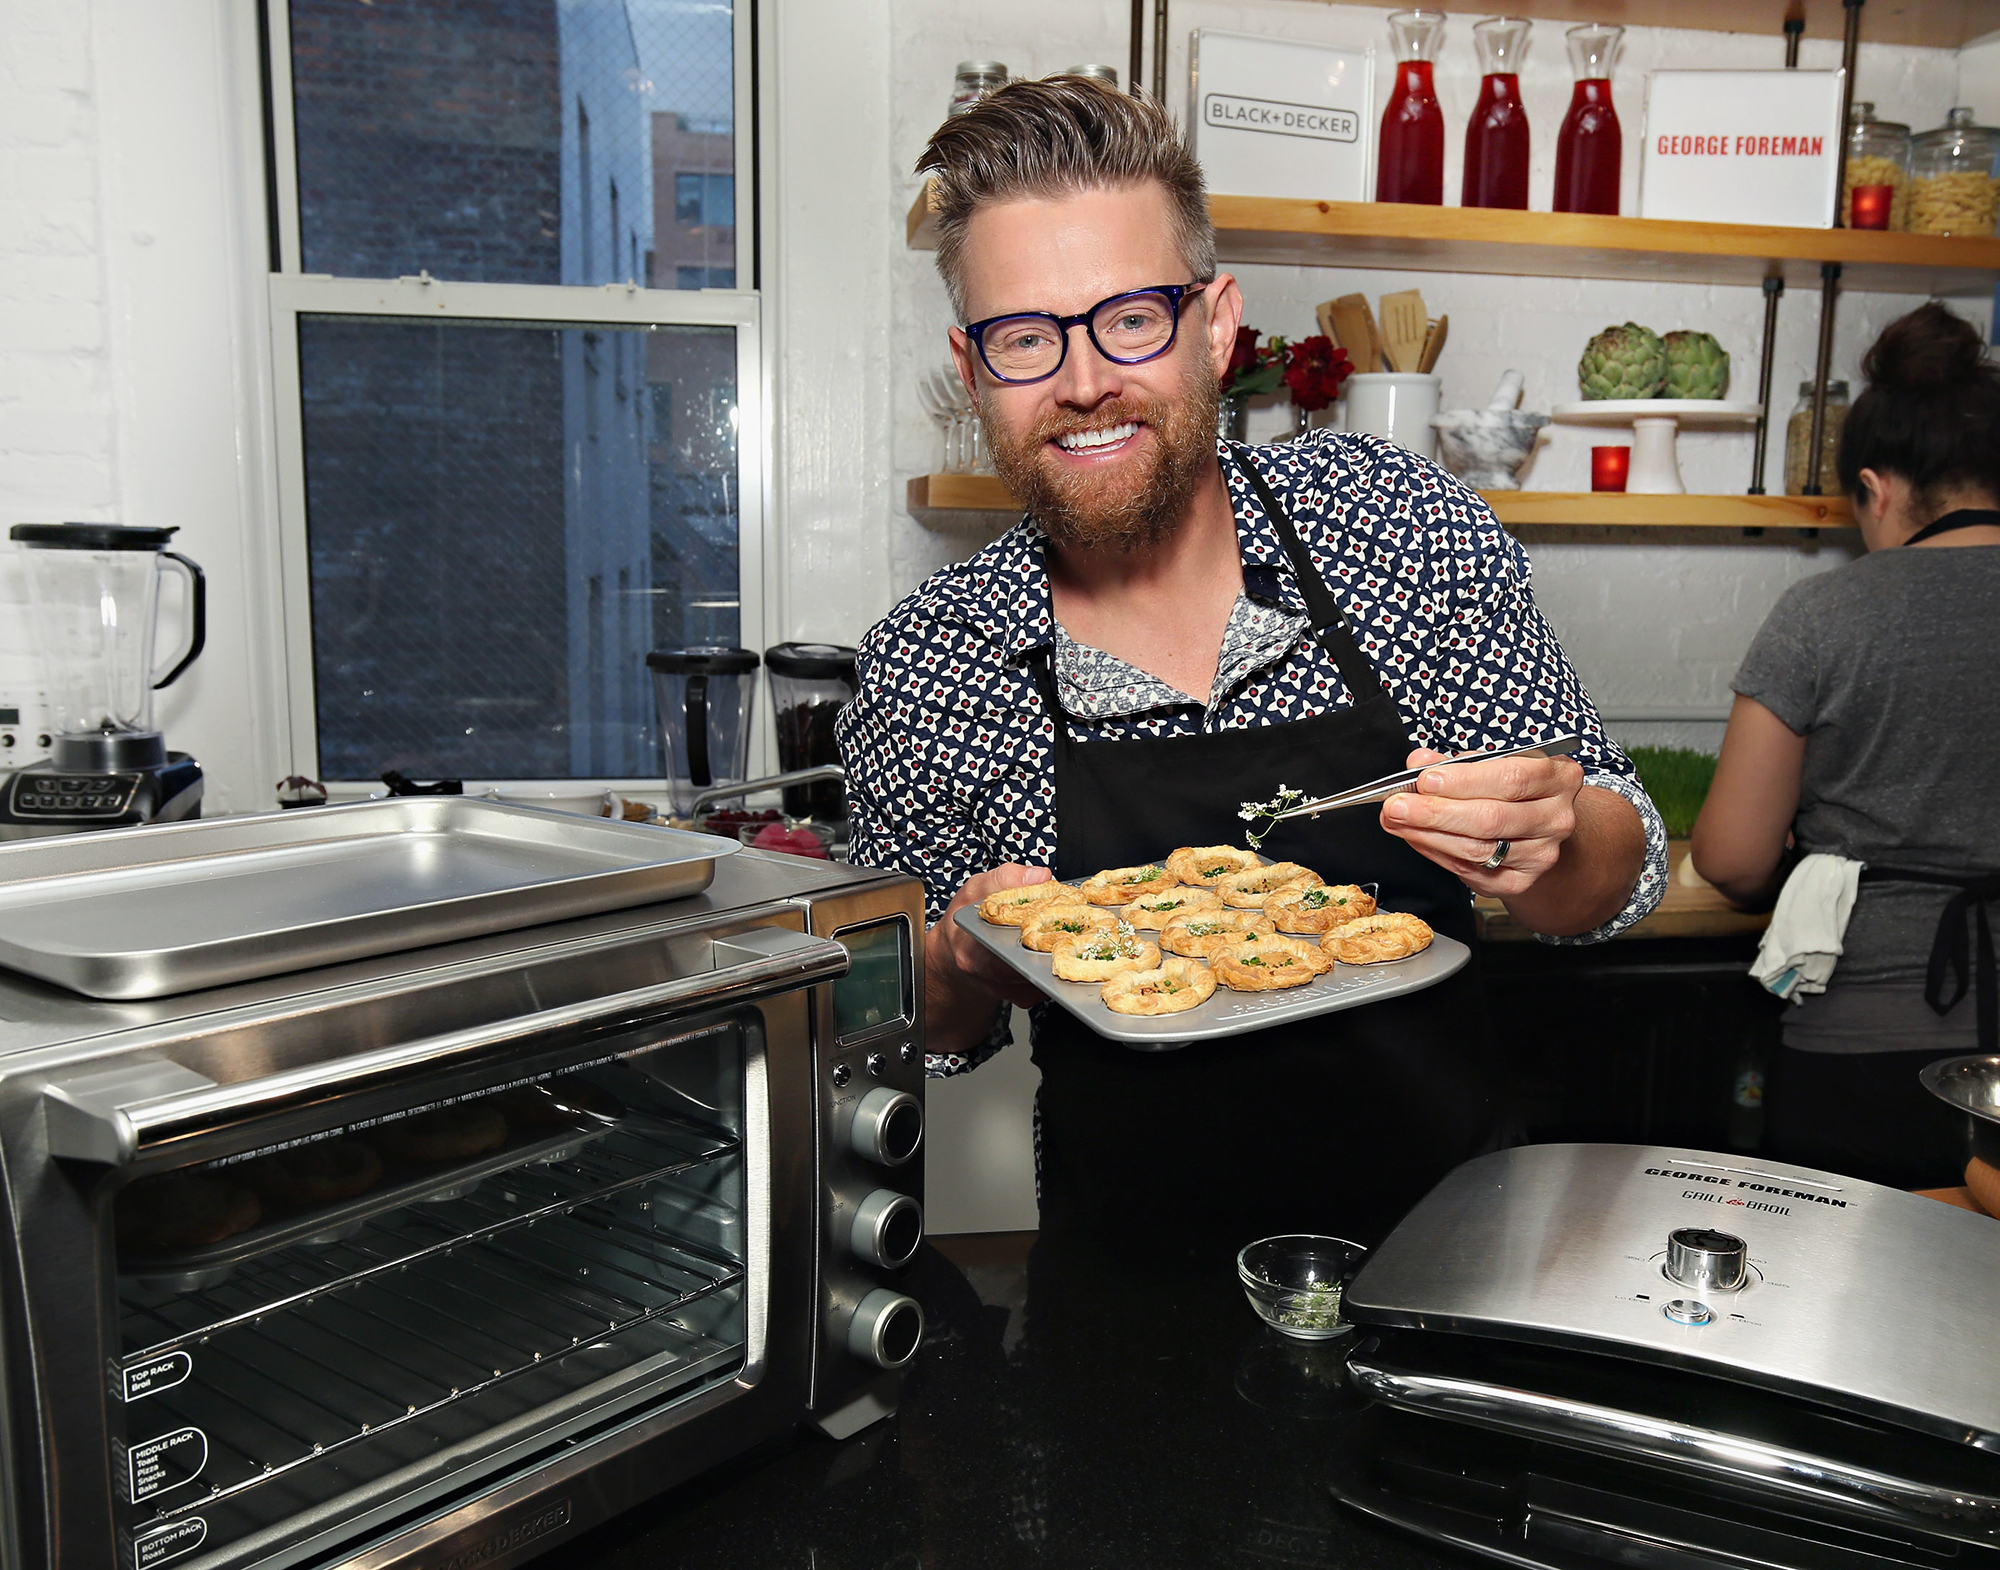 Hottest Male Chefs: Curtis Stone, Antoni Porowski and More - Known for his take on classic American cuisine, Blais was the runner-up on the fourth season of Bravo's Top Chef and returned several seasons later to win Top Chef: All-Stars . Today he runs Juniper & Ivy – an American restaurant in San Diego – and shared a recipe for rose doughnuts with Us .